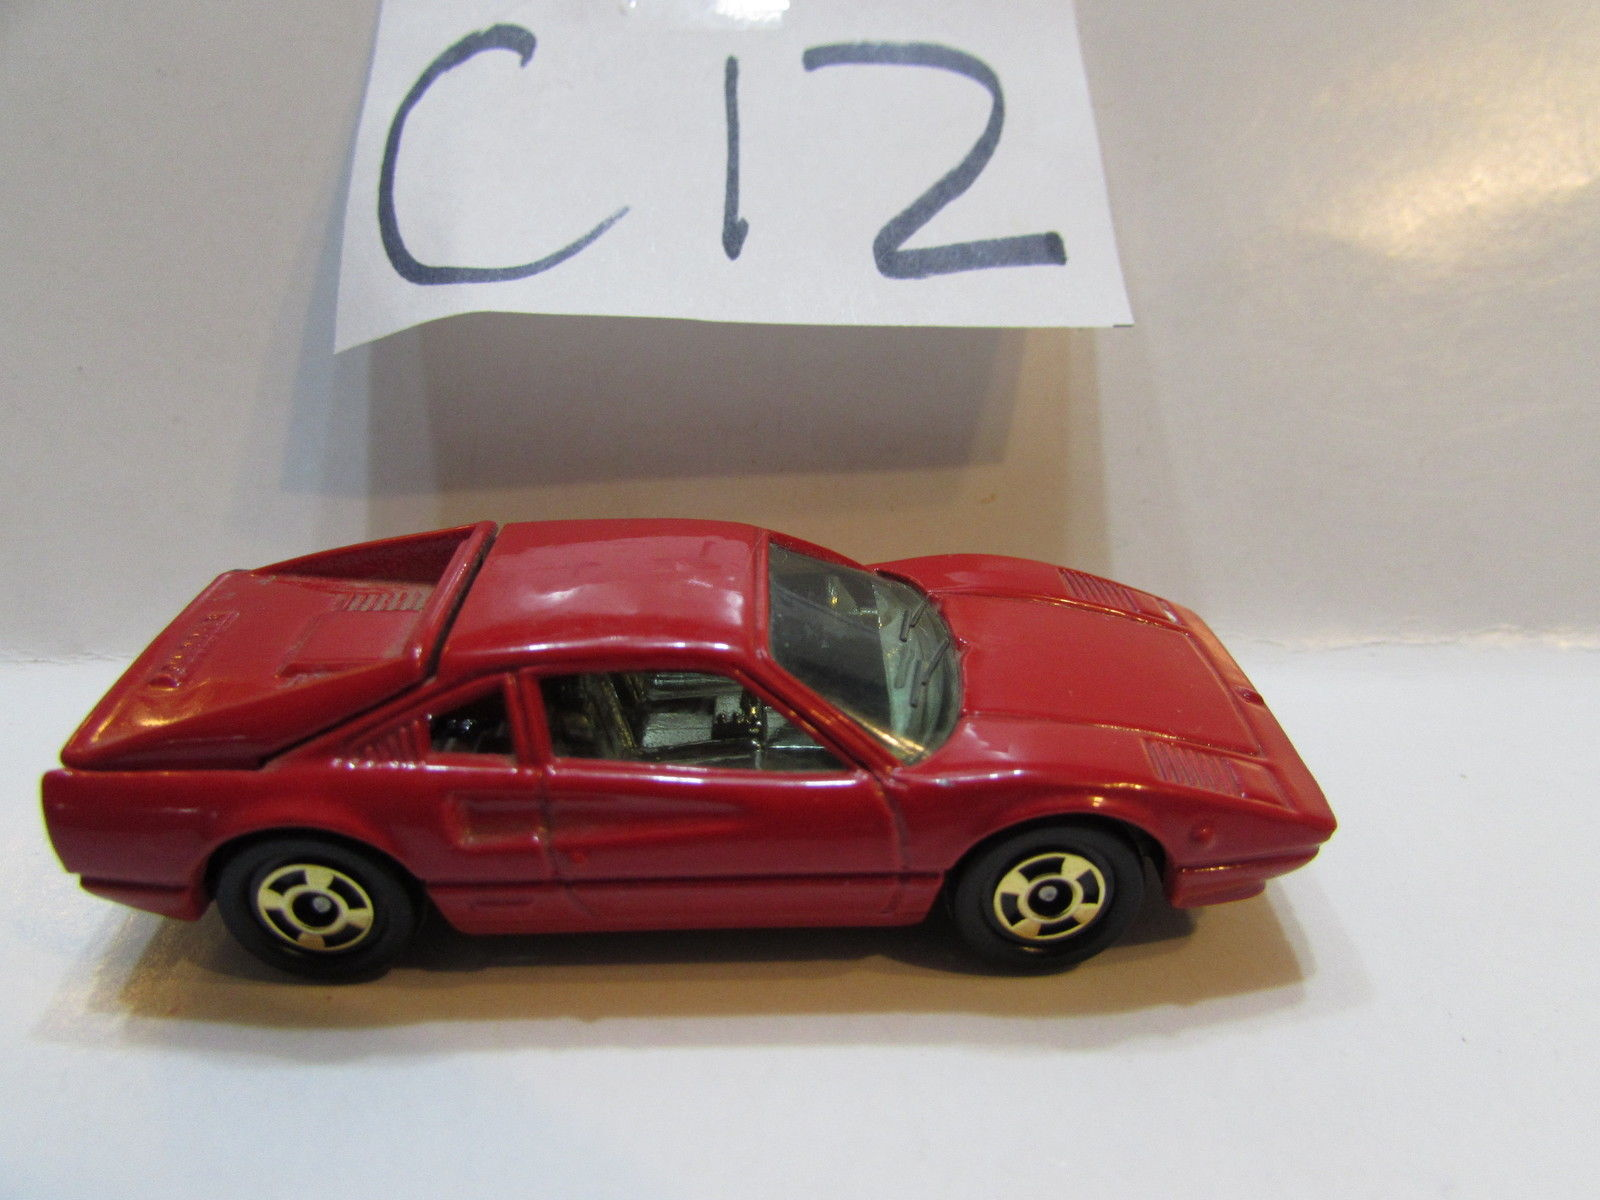 TONICA 1977 FERRARI 308 GTB - NO F 35 LOOSE - MADE IN JAPAN SCALE 1:60